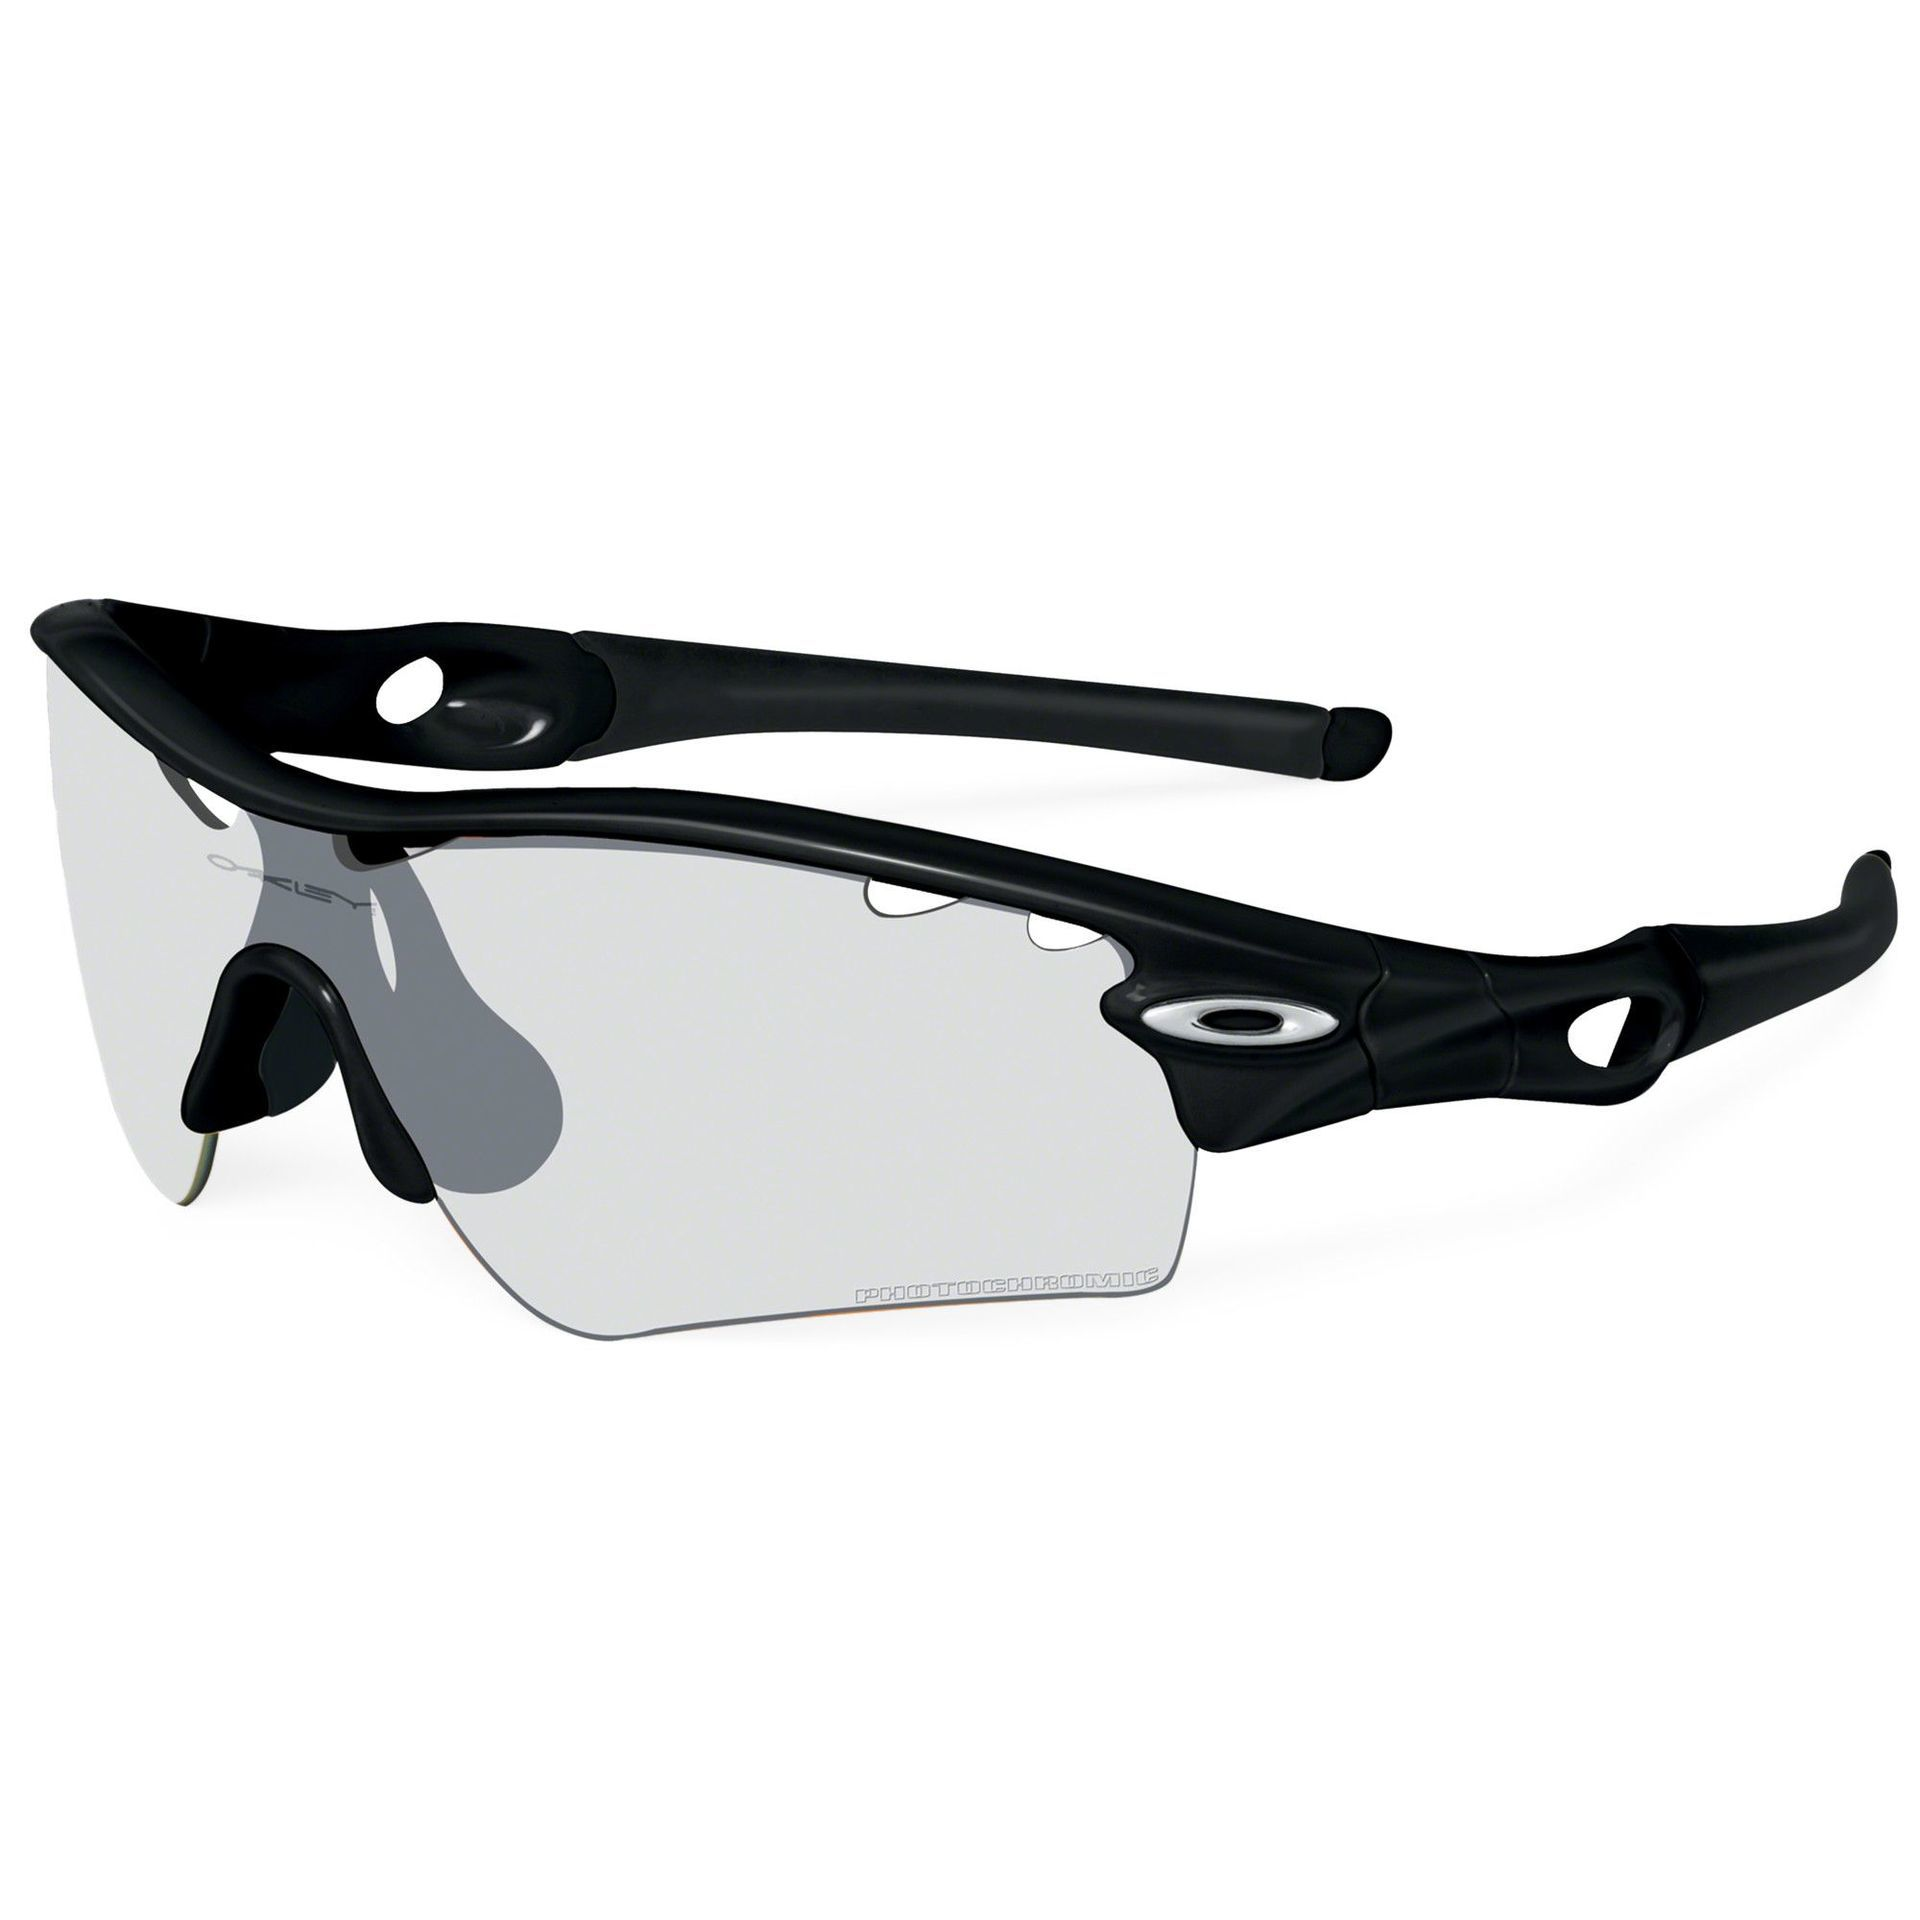 OKULARY OAKLEY RADAR PATH PHOTOCHROMIC CZARNY 1